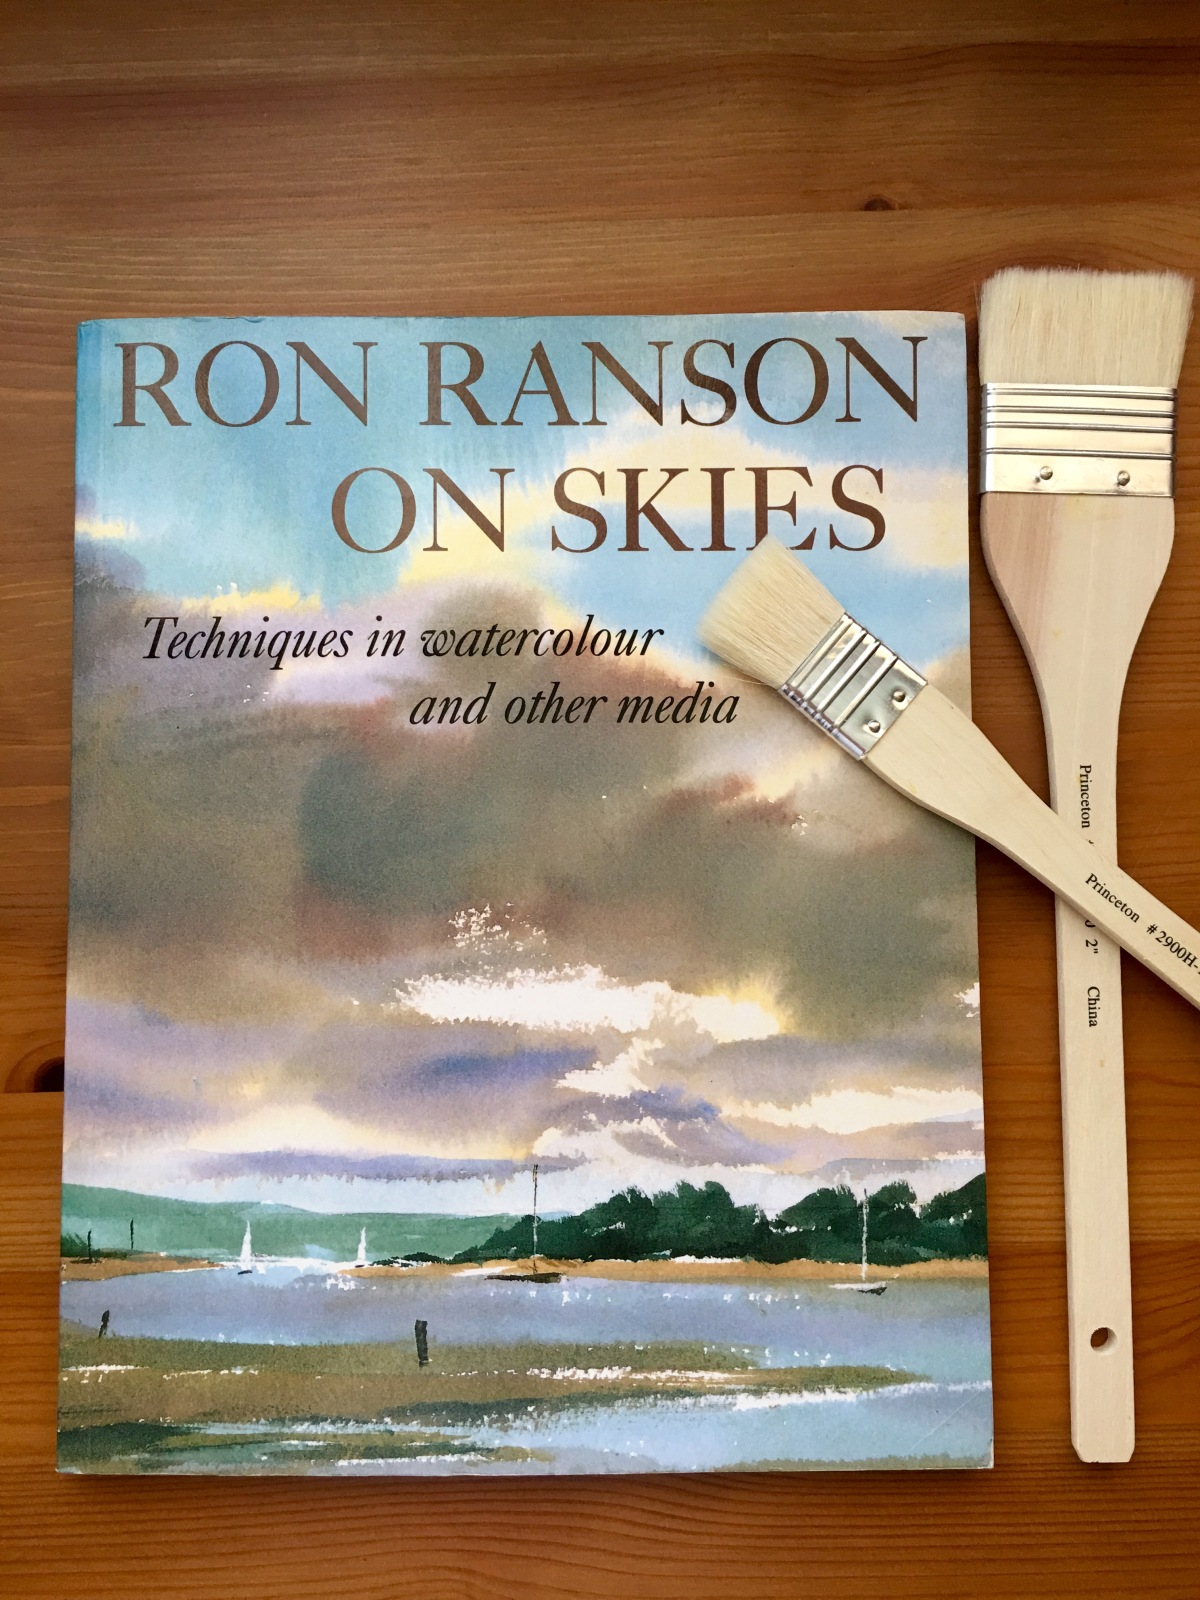 Ron Ranson on skies watercolor book